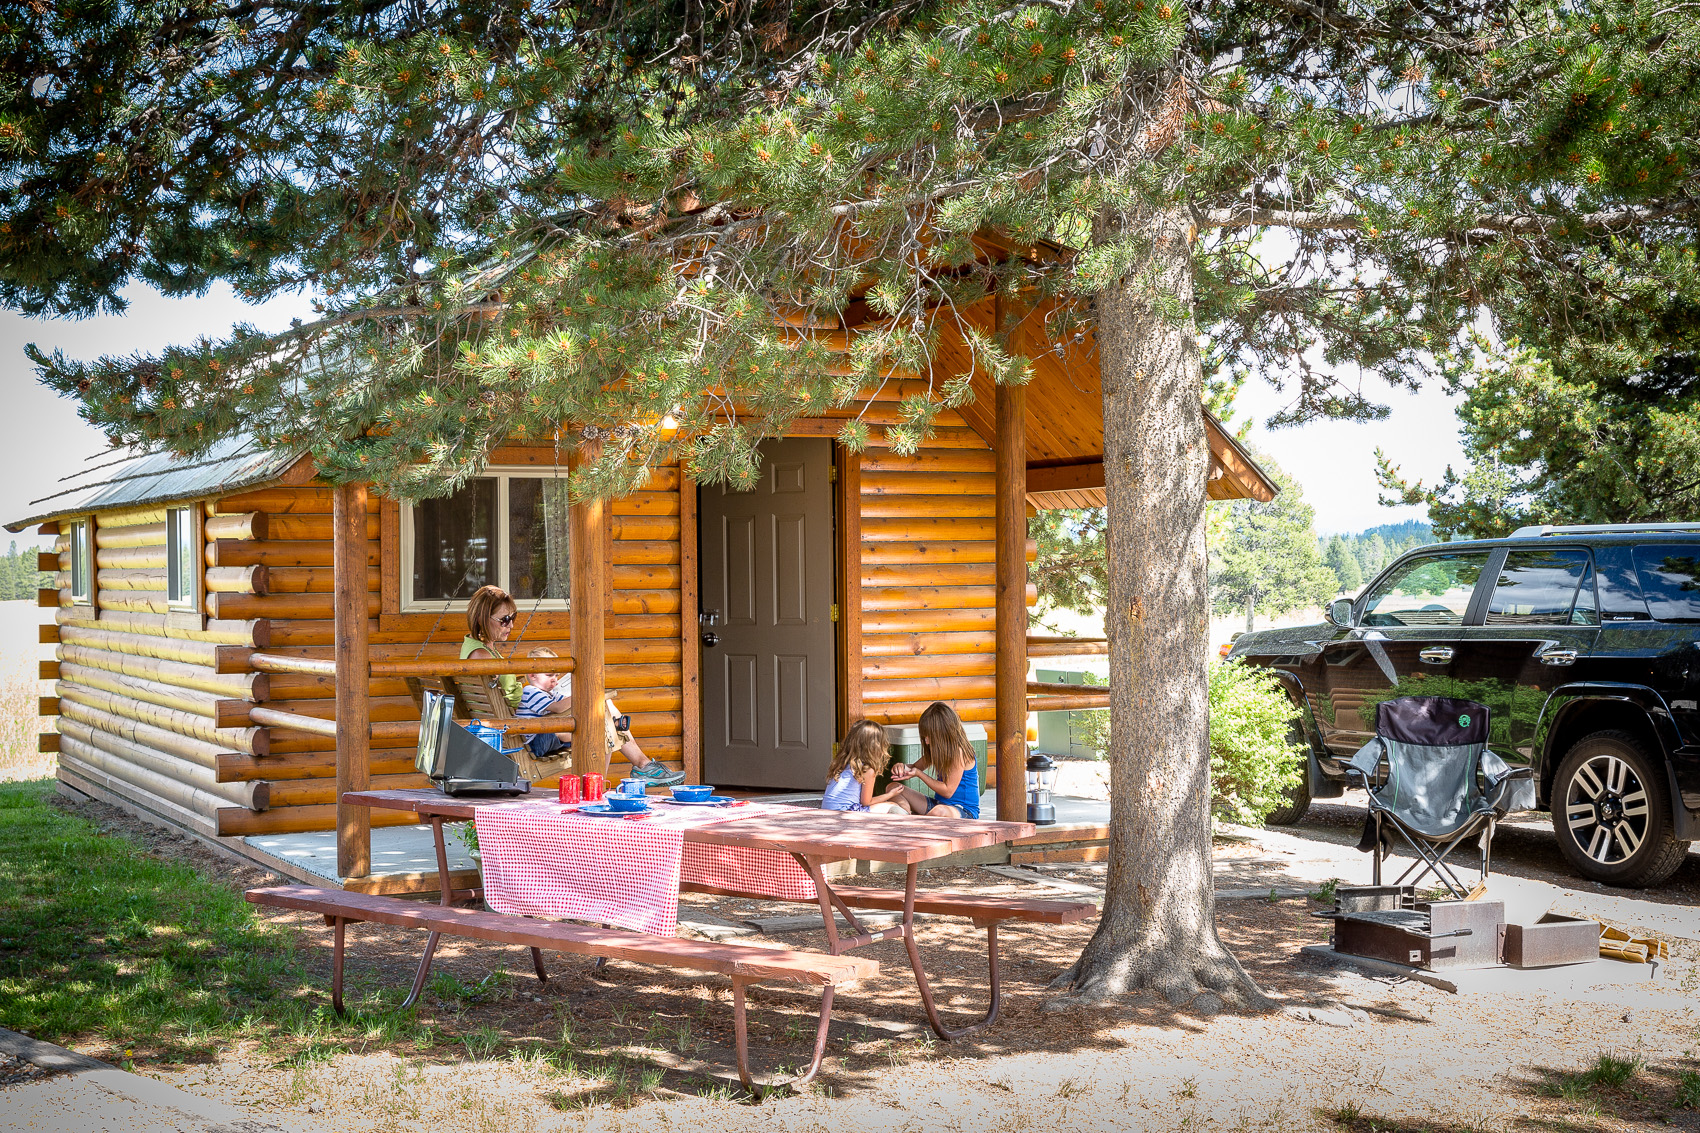 park rentals holidays holiday cn inger of iha cabin lettings your with the in walk for landscapes cabins national yellowstone cc